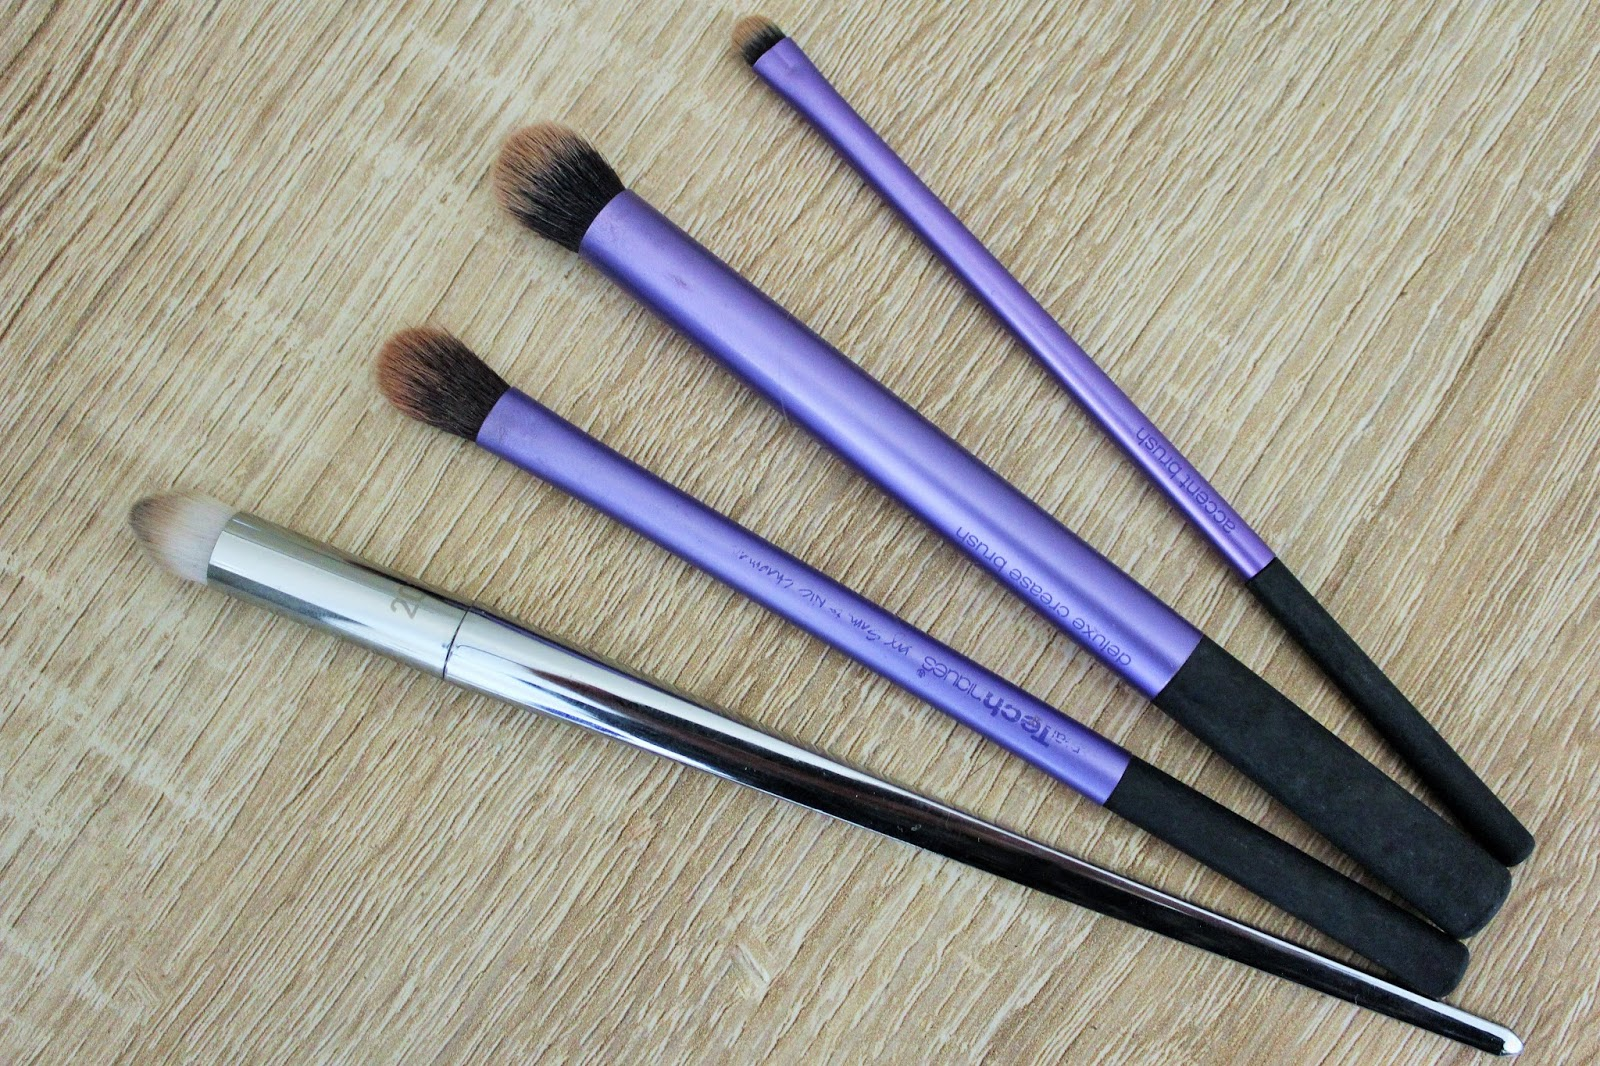 Real Techniques Starter Set (Eyes) and Bold Metals Pointed Crease Brush